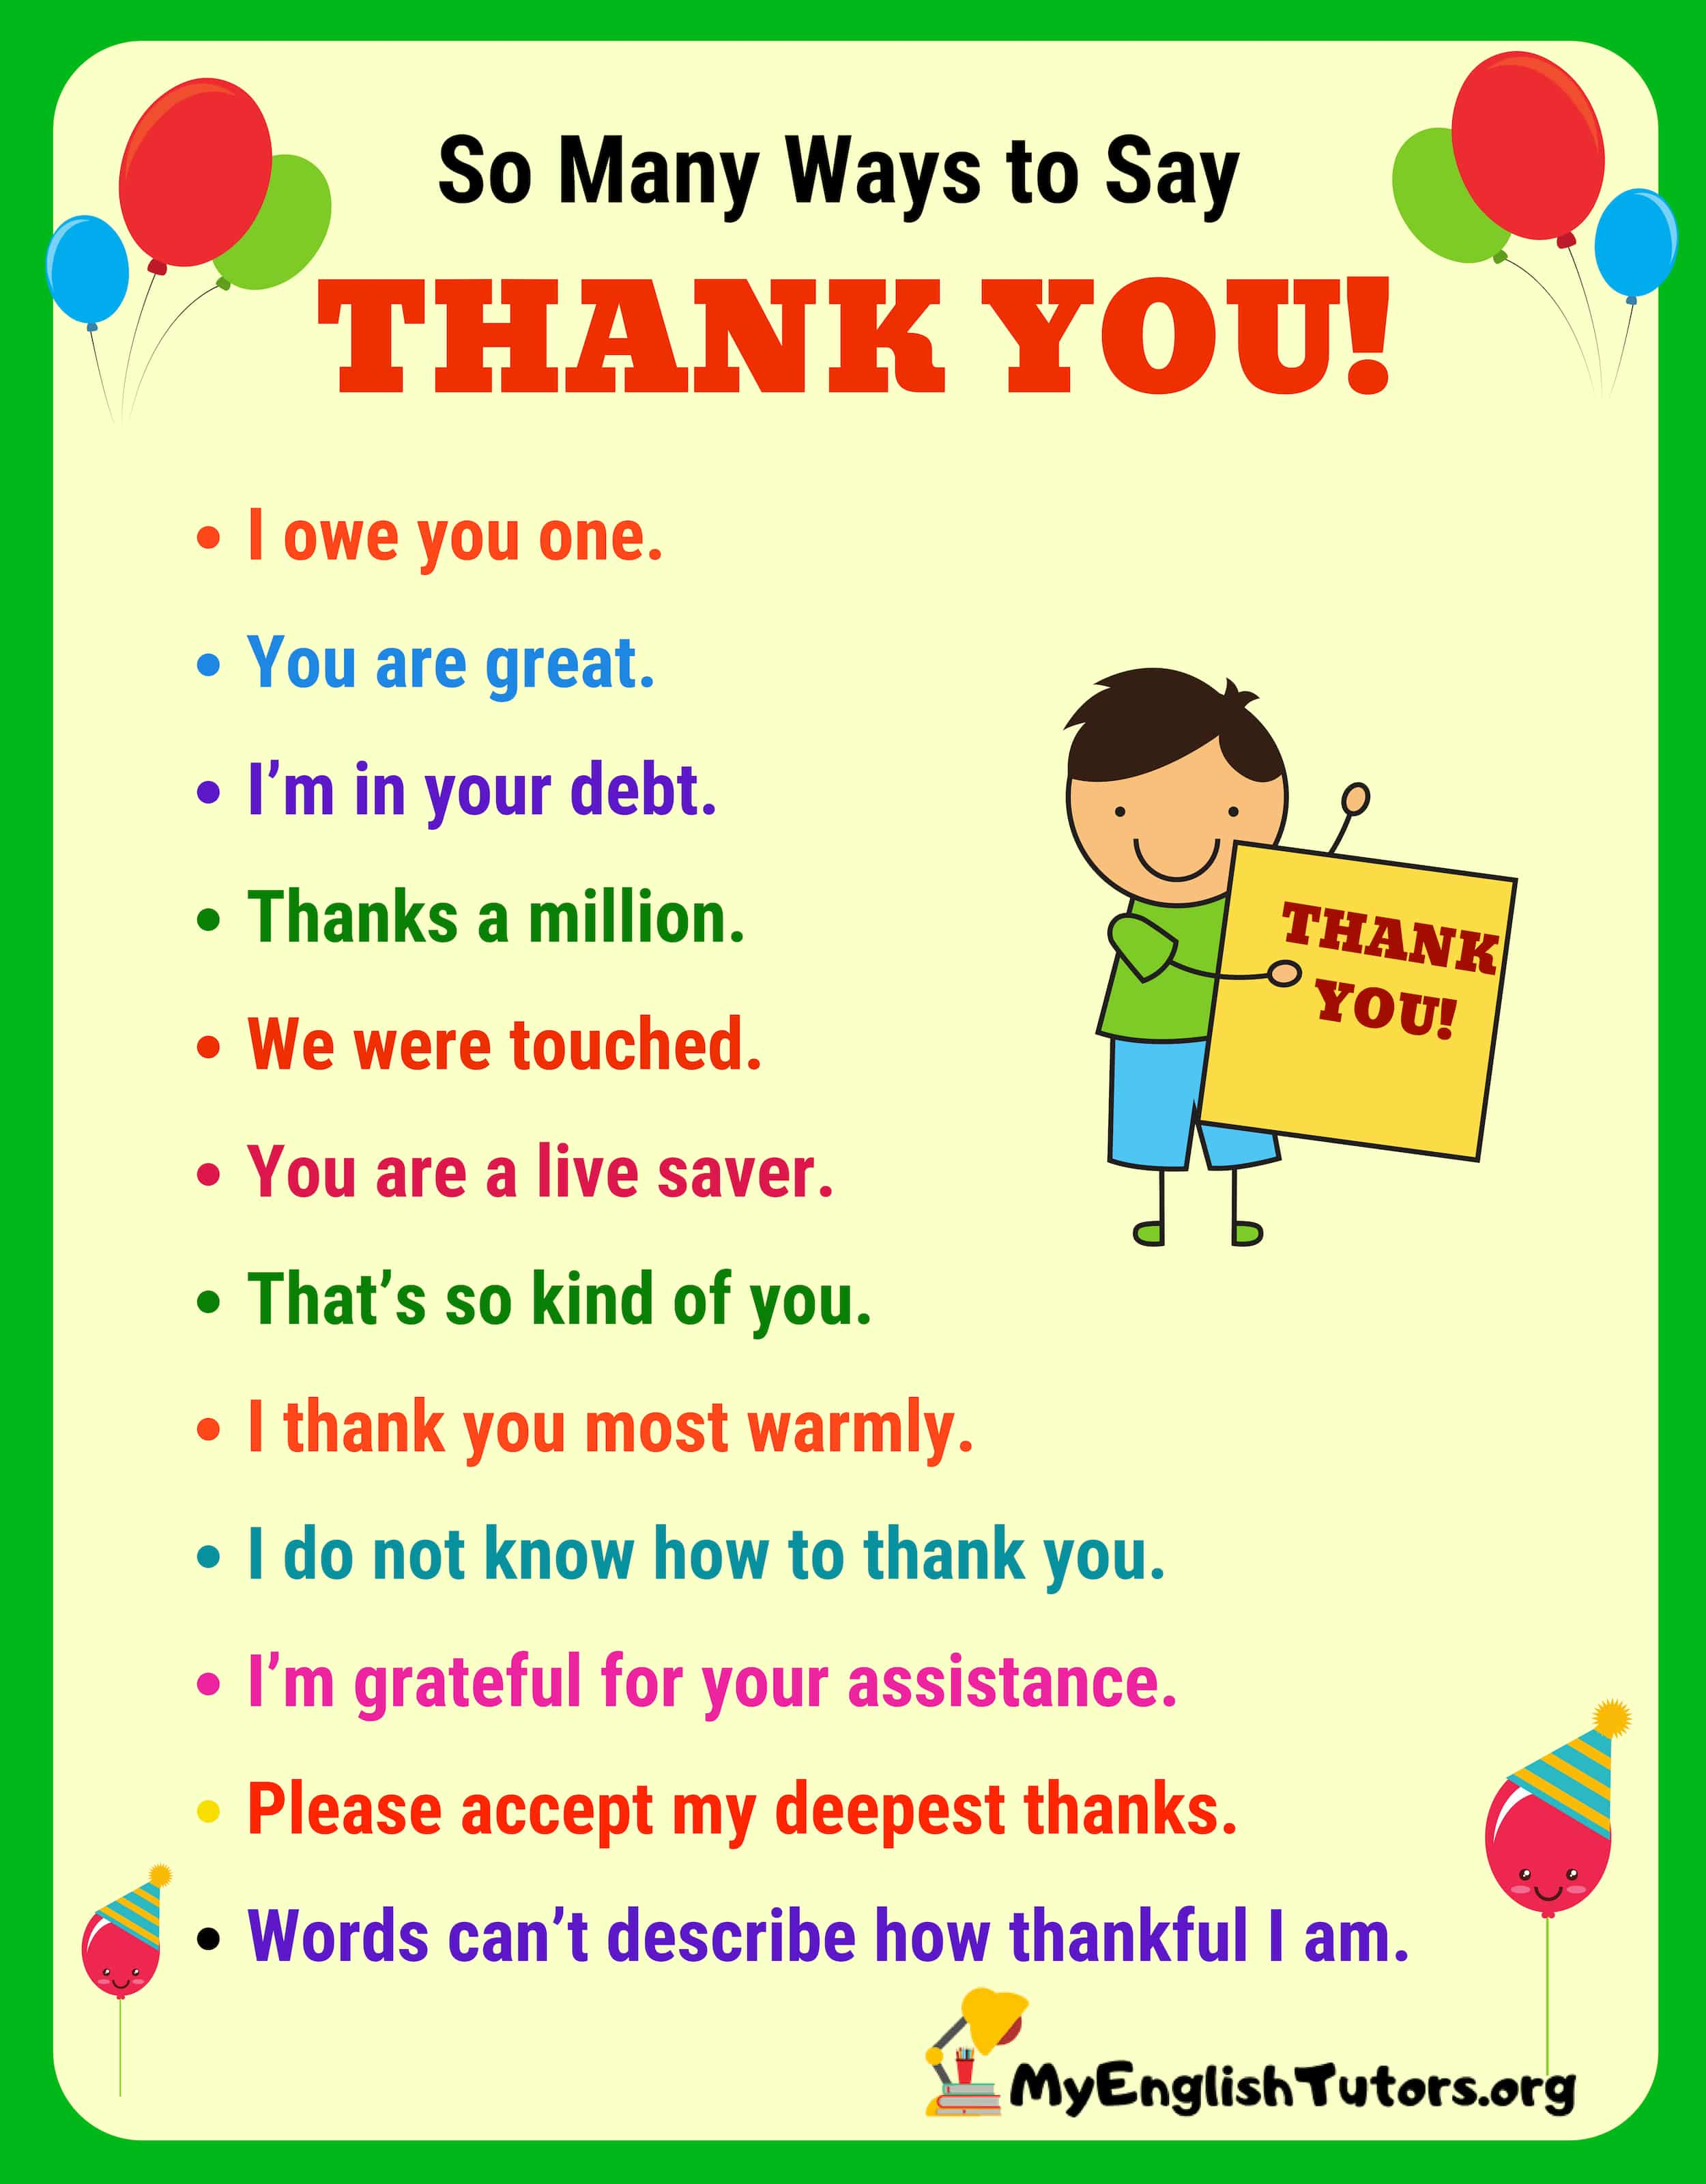 Thank You Synonym 41 Power Ways To Say Thank You